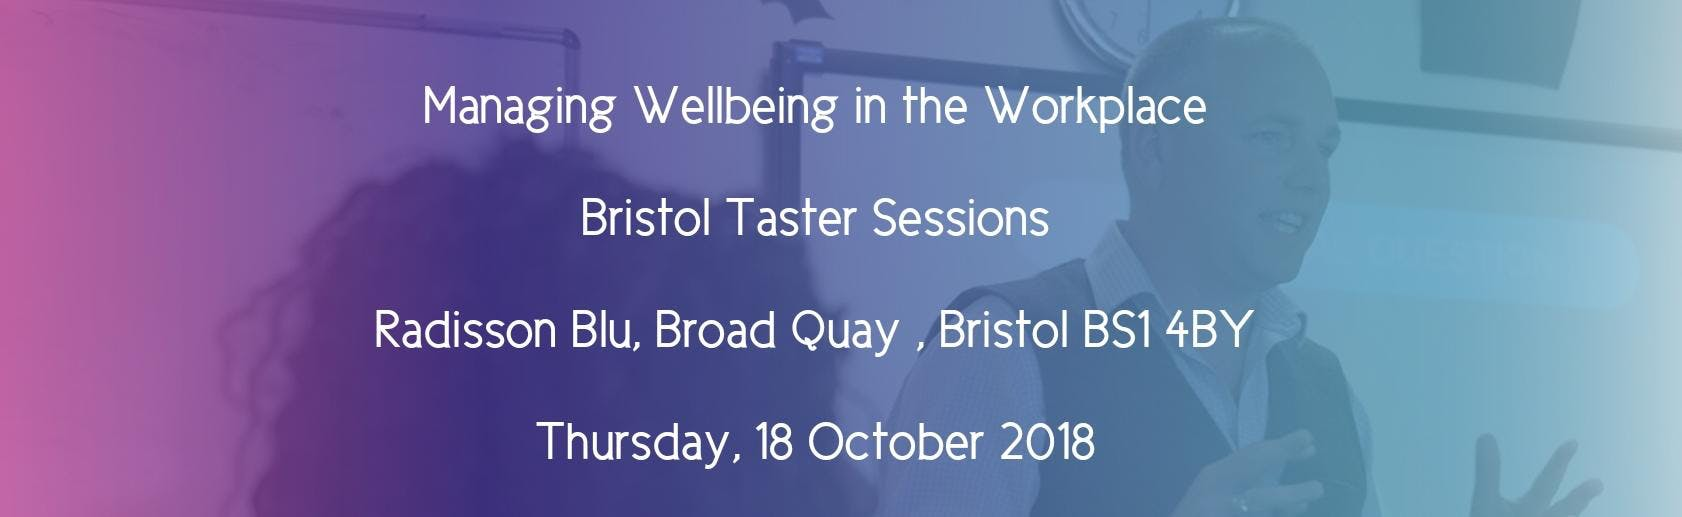 Managing Wellbeing In The Workplace: Bristol